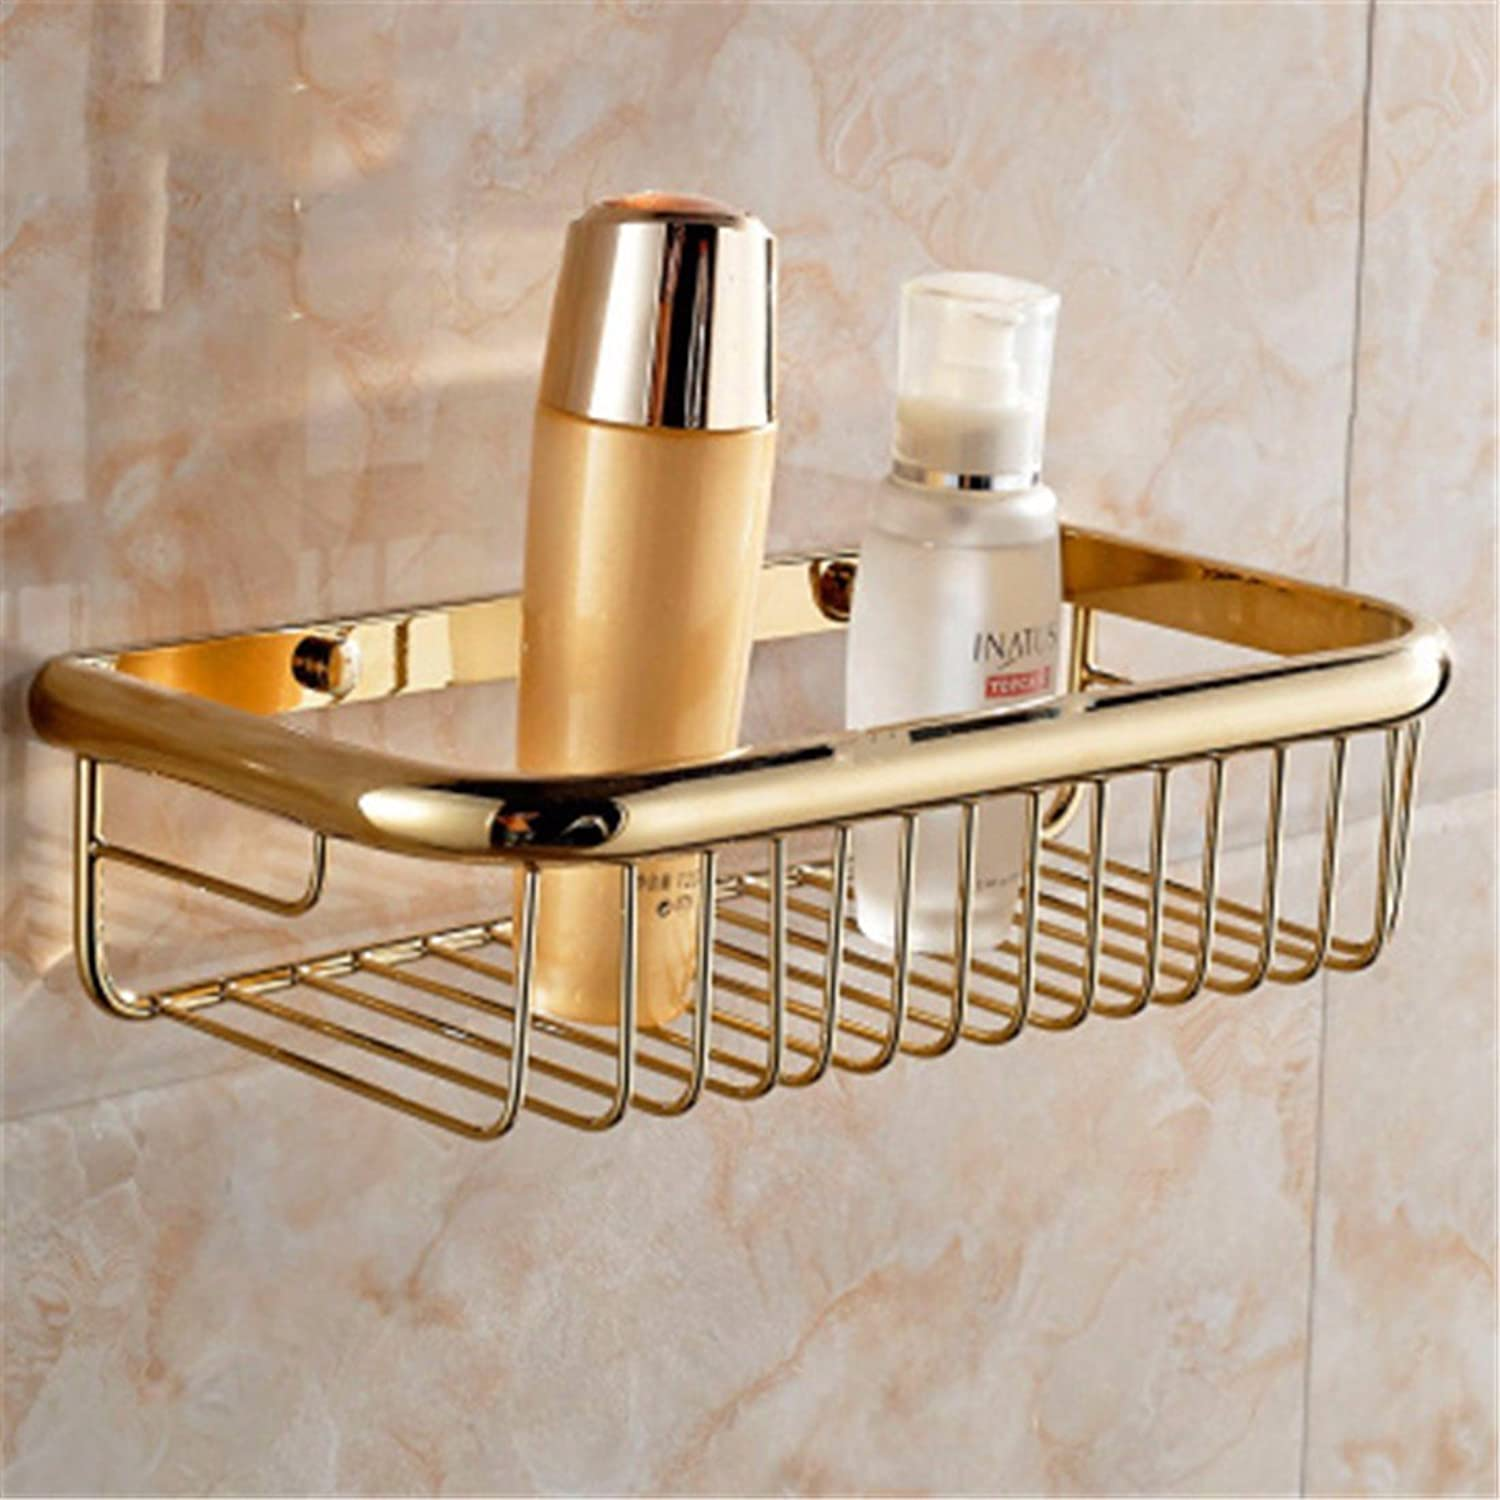 Continental Copper gold Ceramic Base Bathroom Accessories Set Single Double Bar Toilet Brush Holder, The Built-in Basket 1